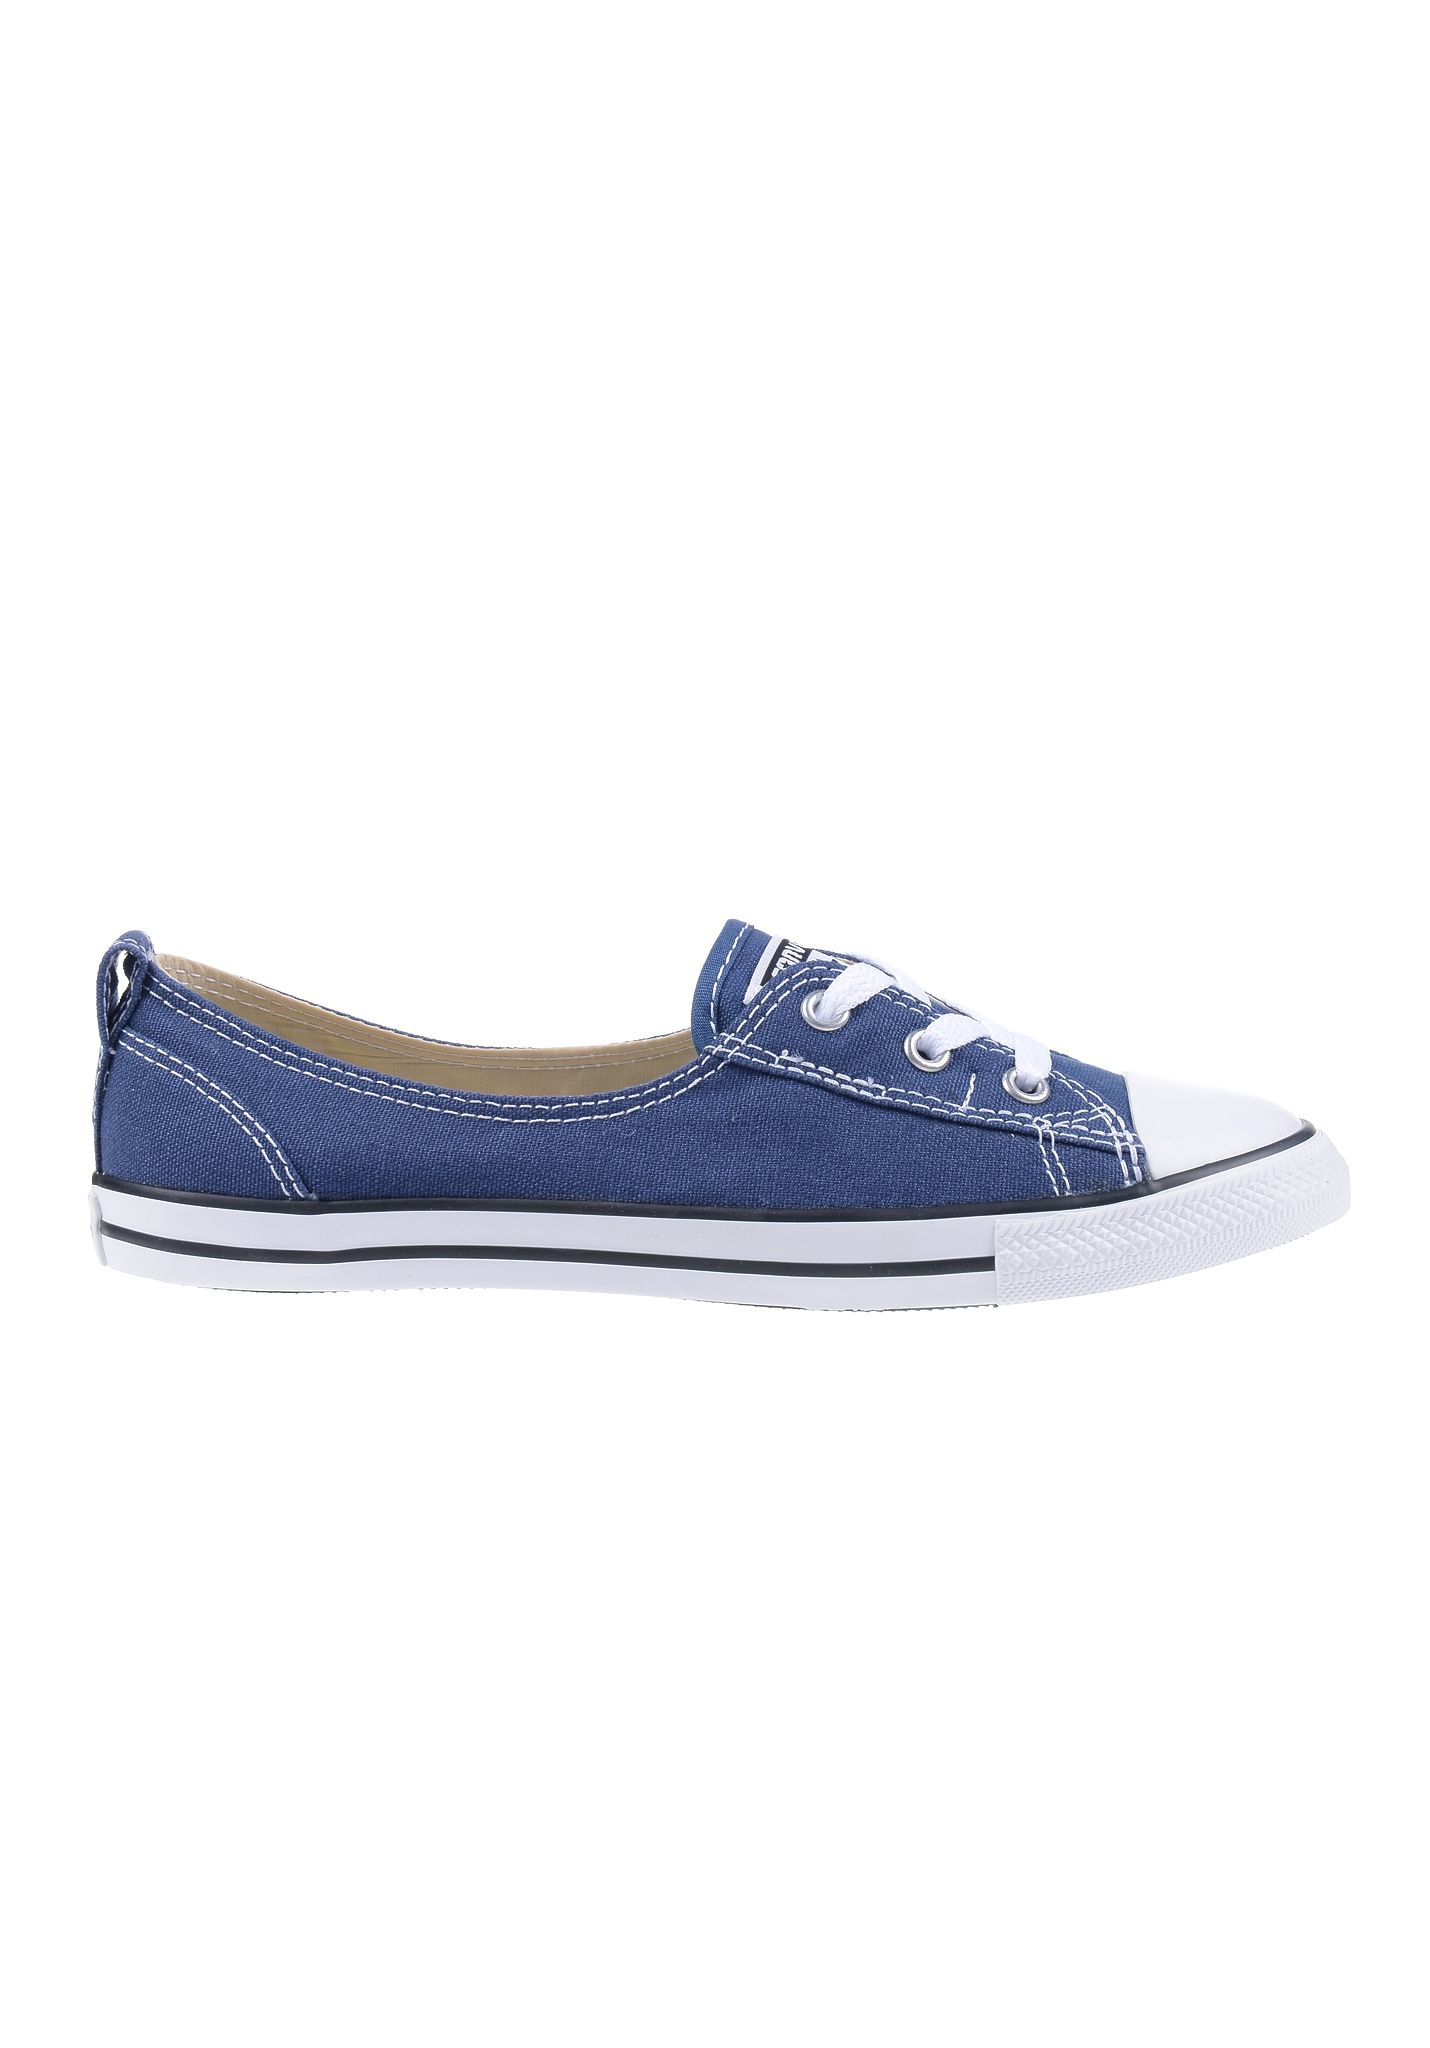 0e508627721a7c Converse Chuck Taylor All Star Ballet Lace - Sneakers for Women - Blue -  Planet Sports